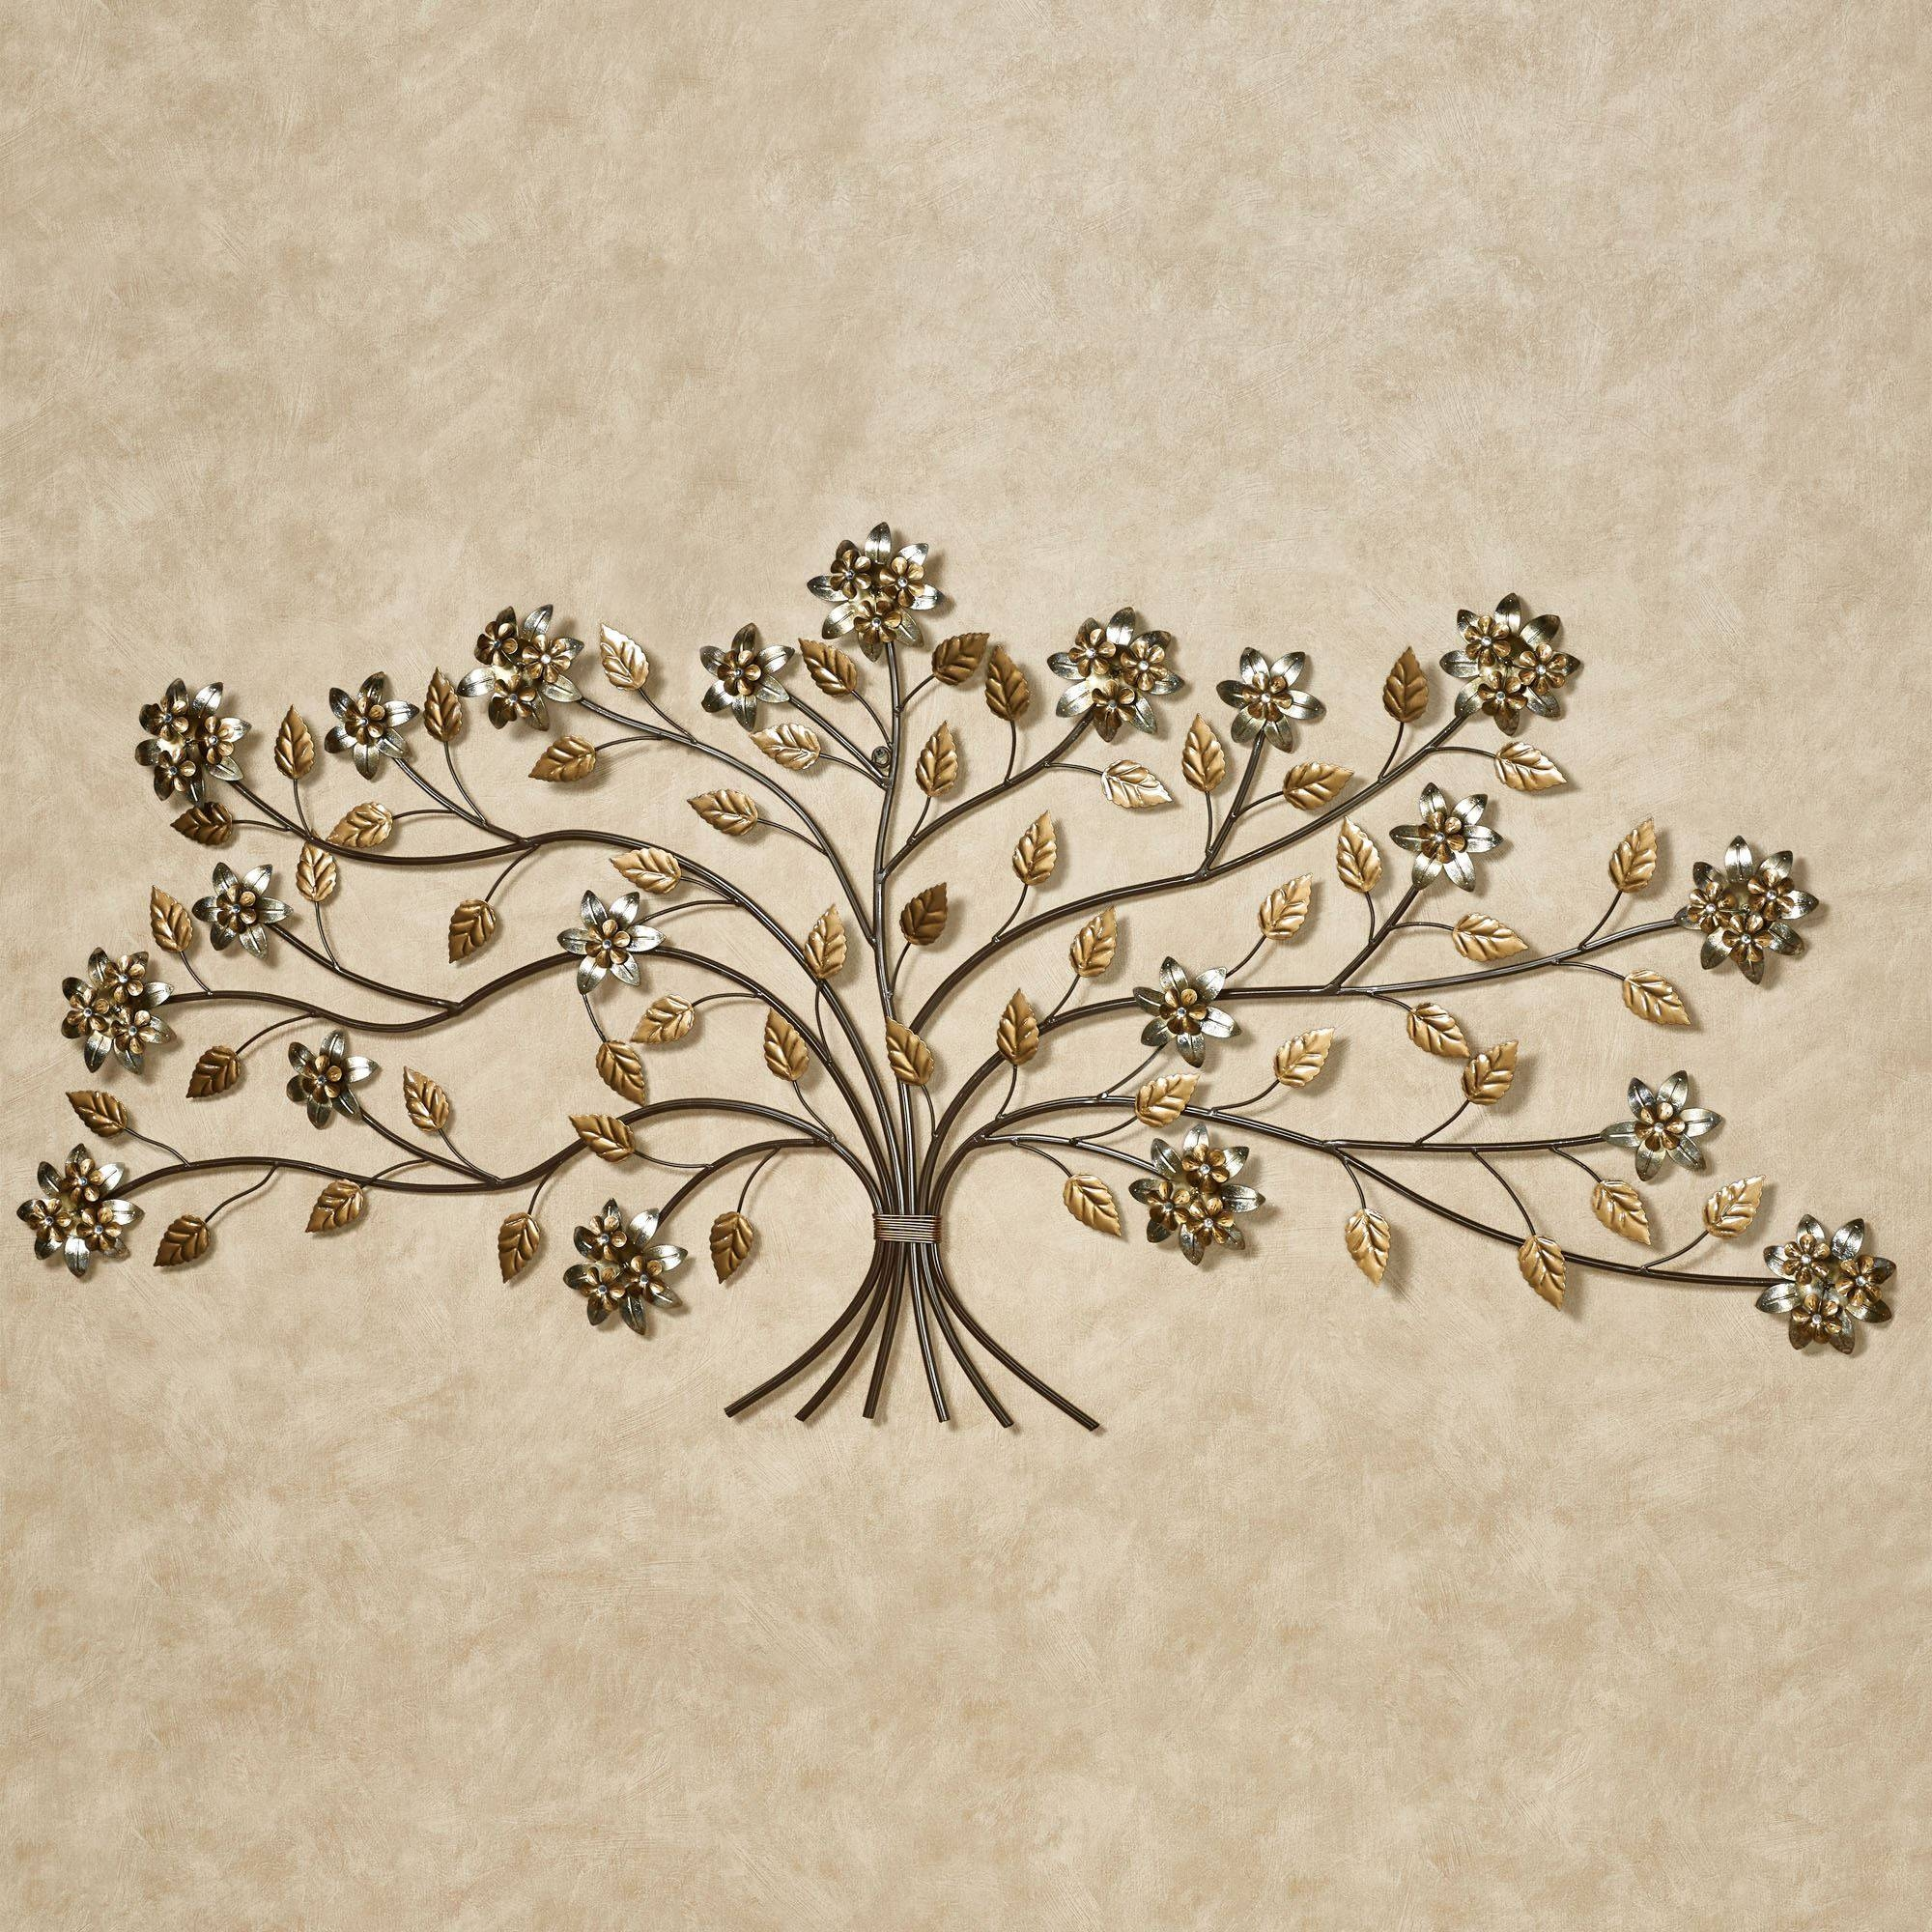 Natural Elements Metal Wall Sculptures | Touch Of Class Intended For Most Recently Released Elements Metal Wall Art (Gallery 2 of 20)